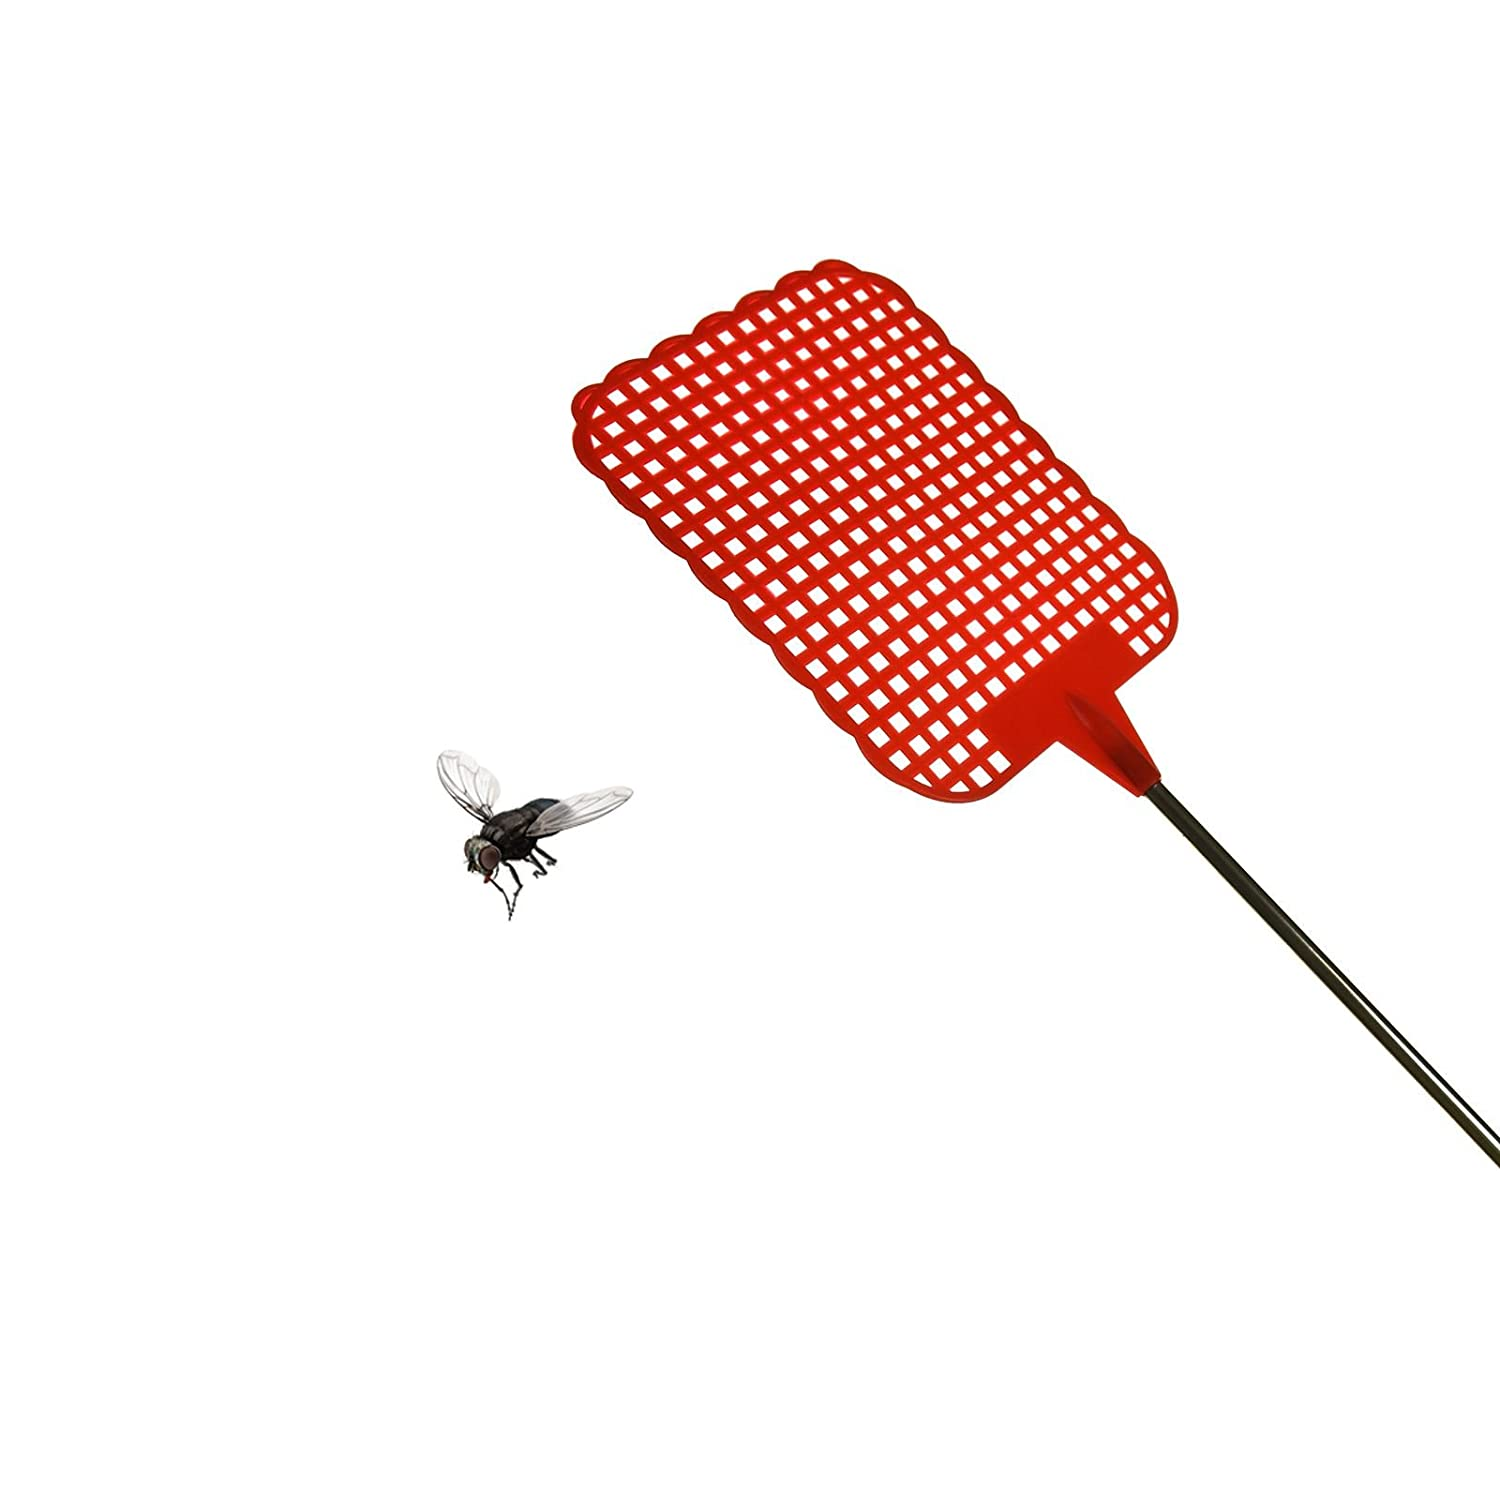 Asab 70cm Telescopic Fly Swatter Extendible Bug Wasp Bee Mosquito Circuitboardinsectkillerjpg Killer Flexible Plastic Insect Catcher Swat